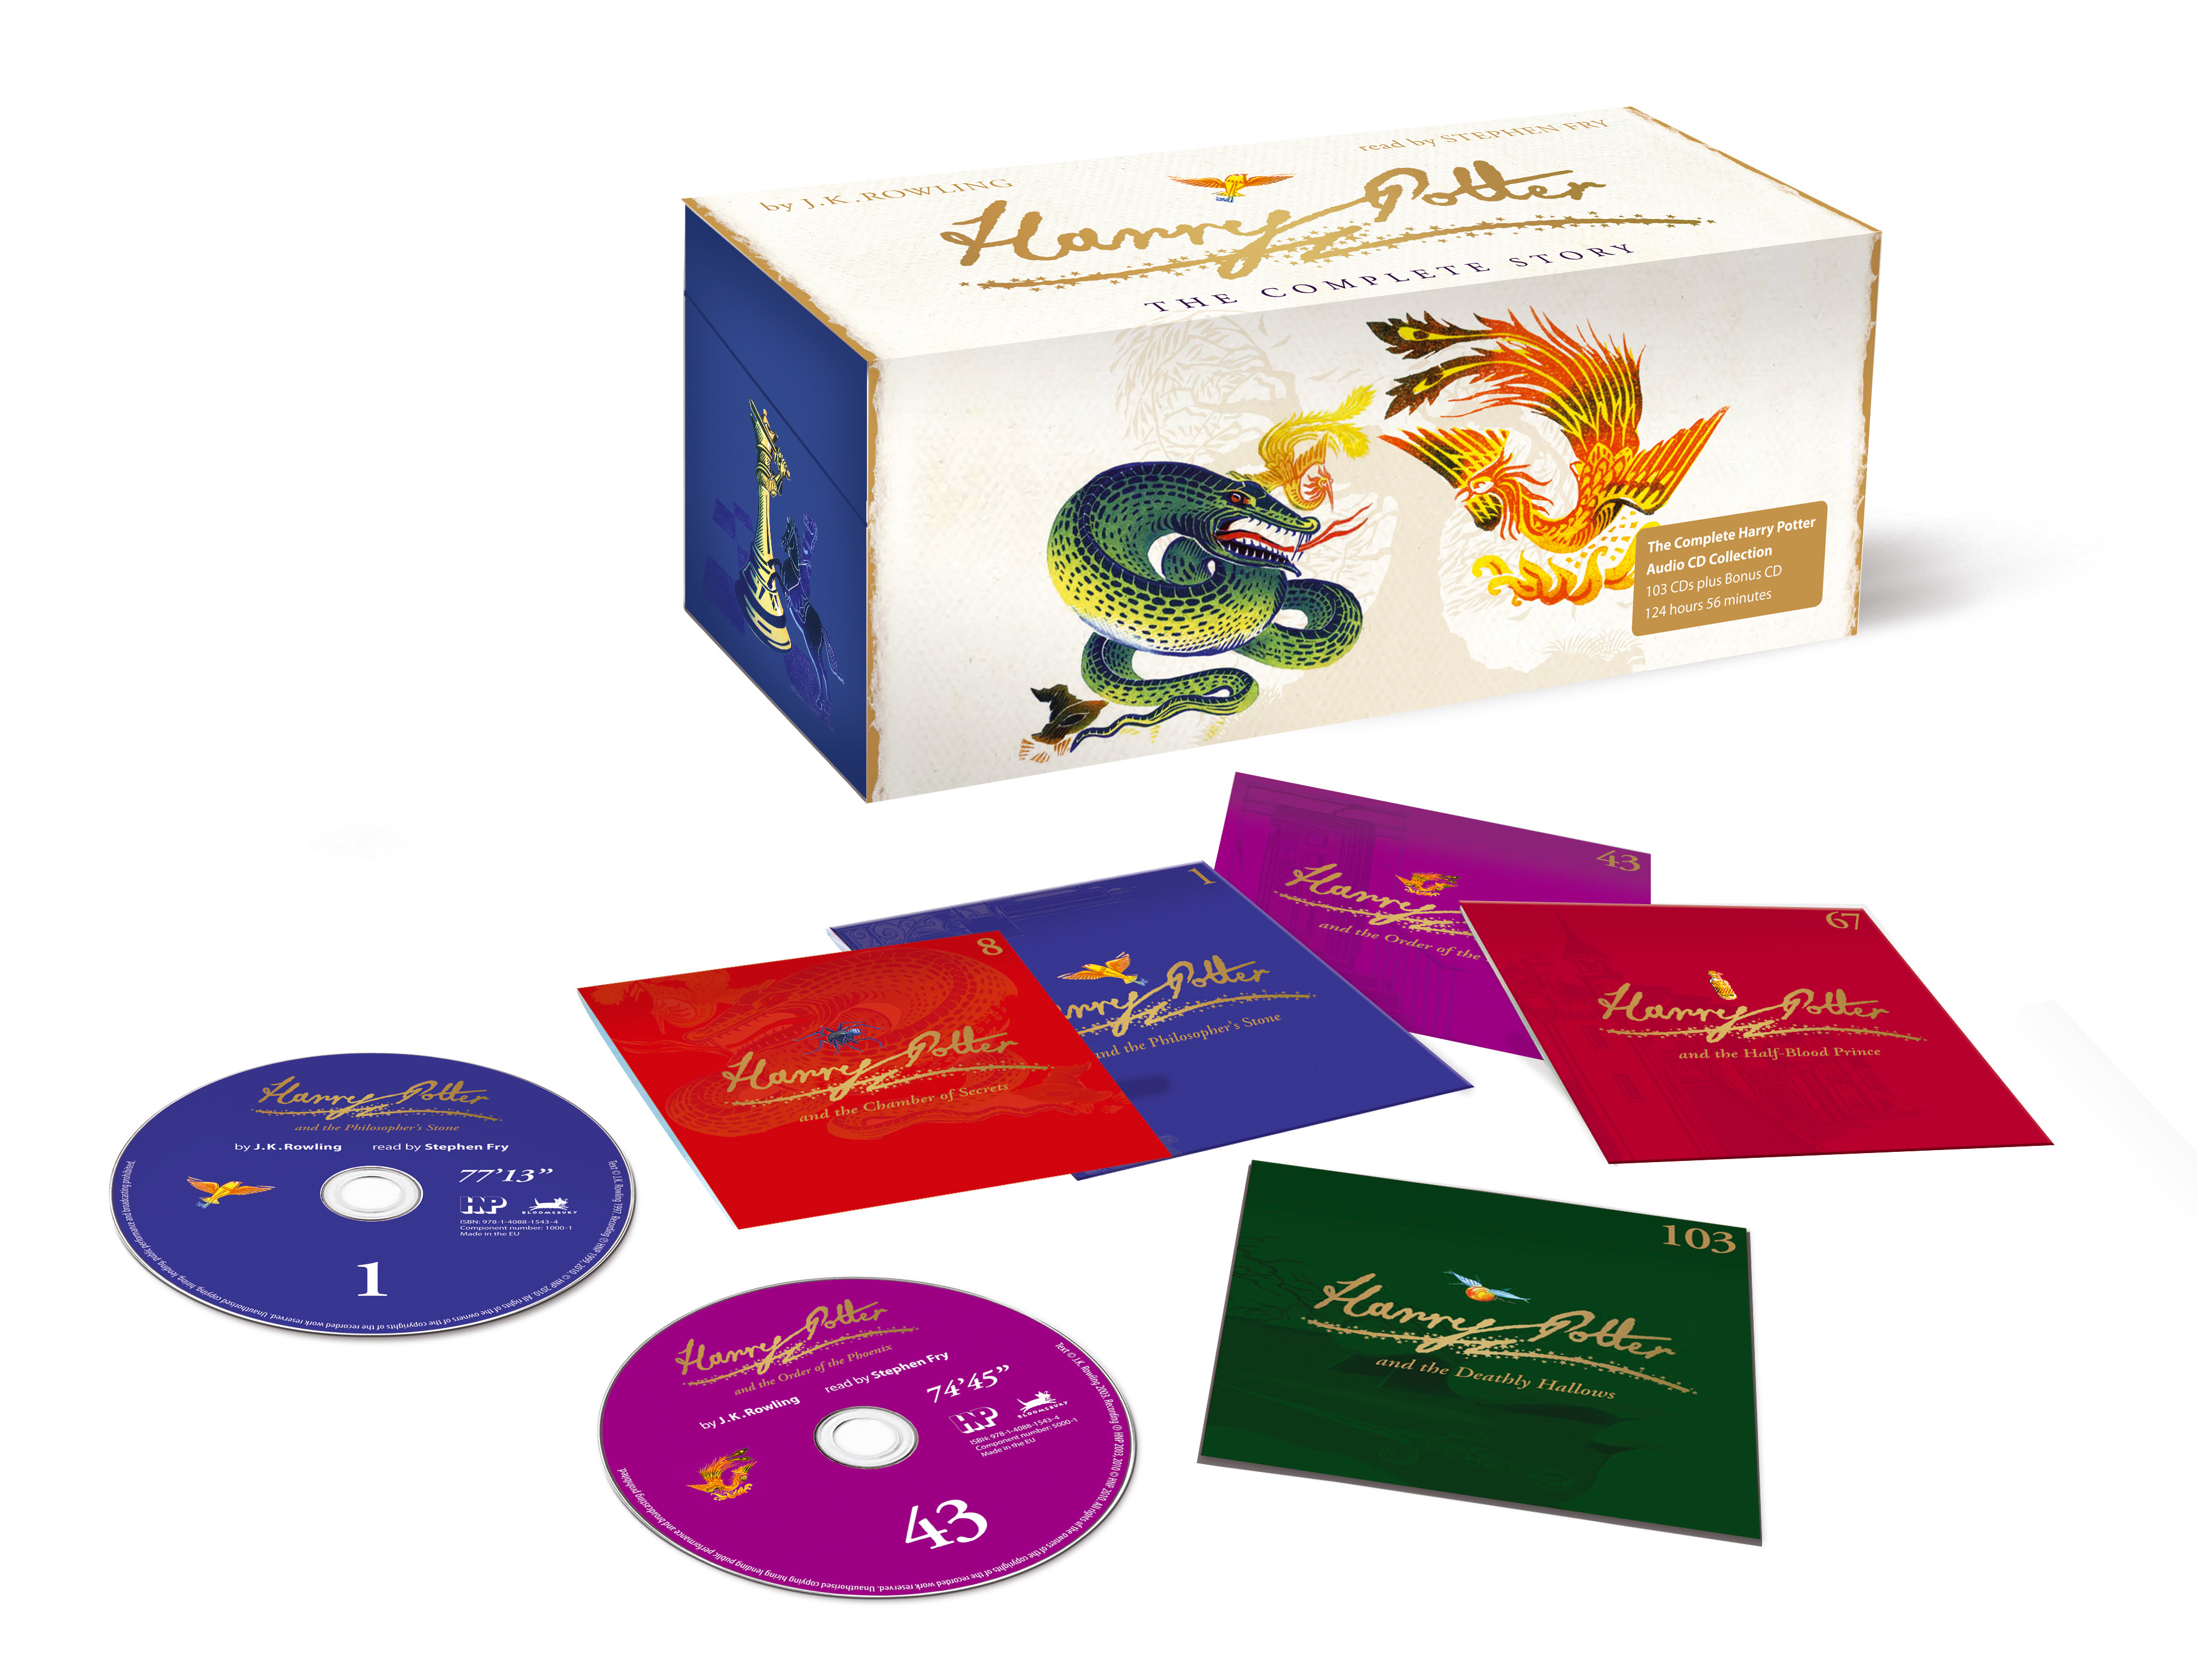 Harry Potter signature edition audio boxed set